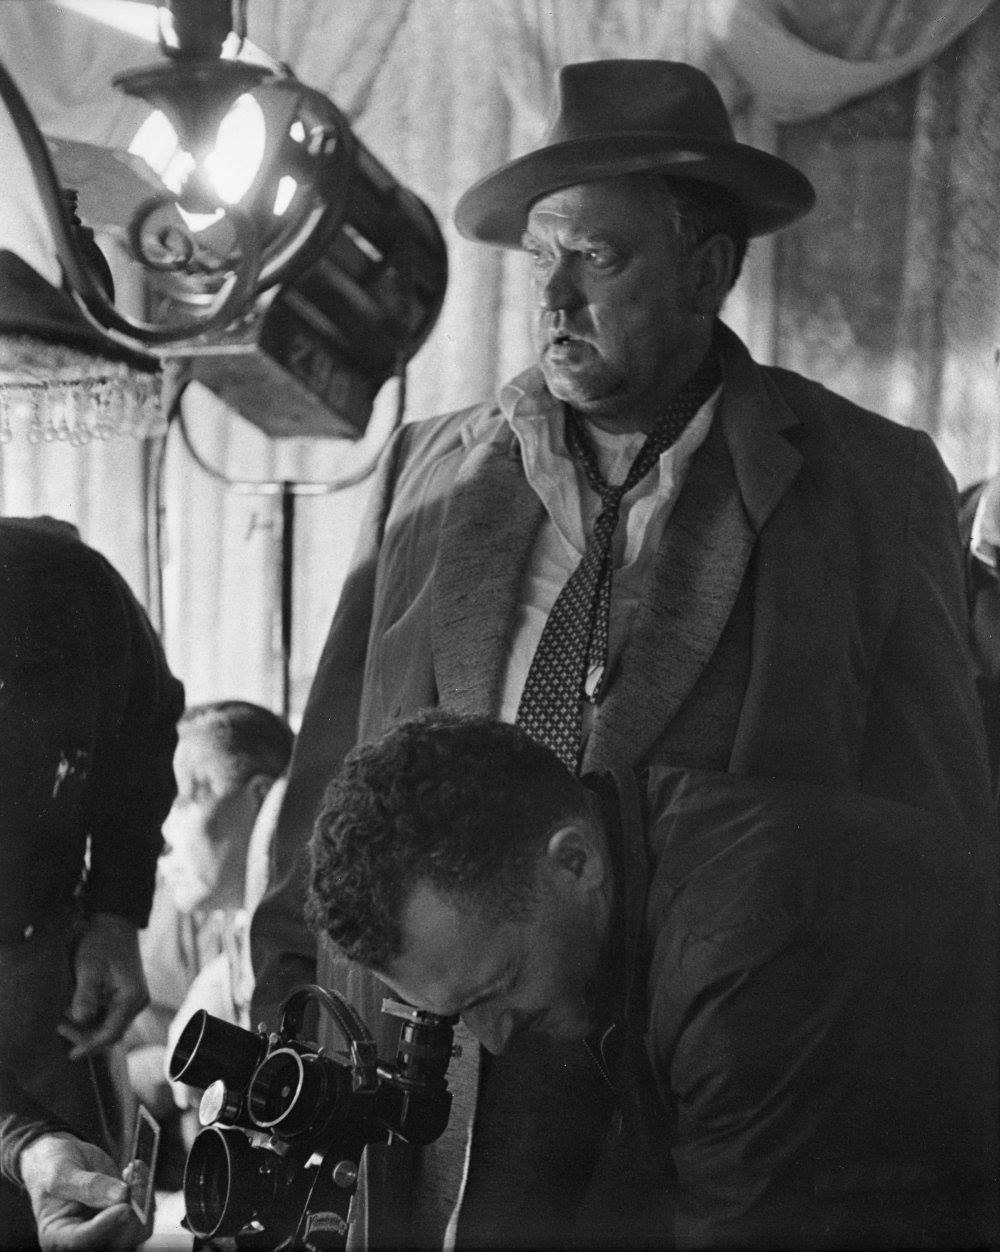 Orson Welles on the set of Touch of Evil